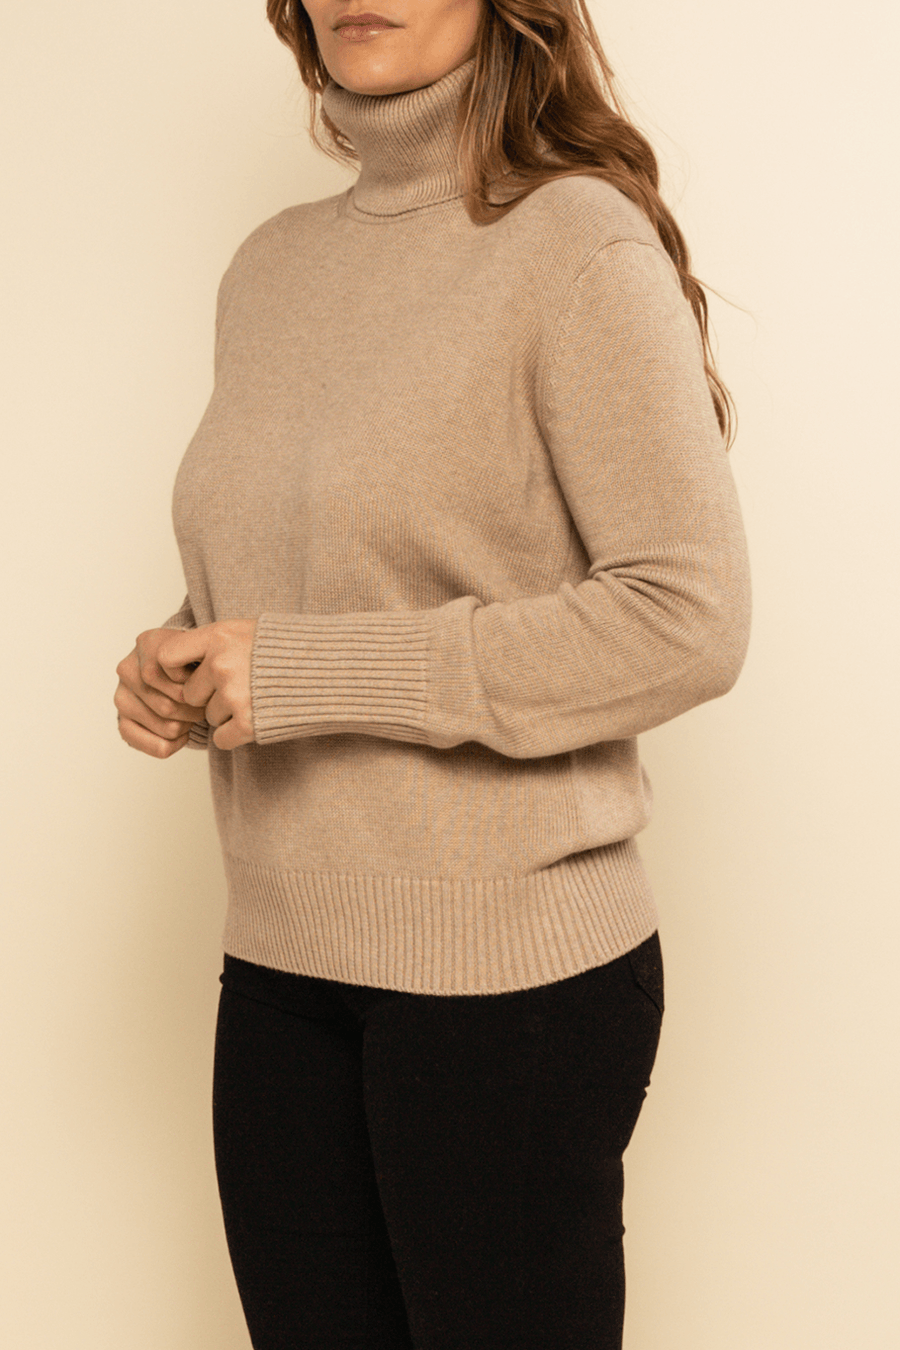 Lucerne High Neck Sweater - Biscuit - Shore